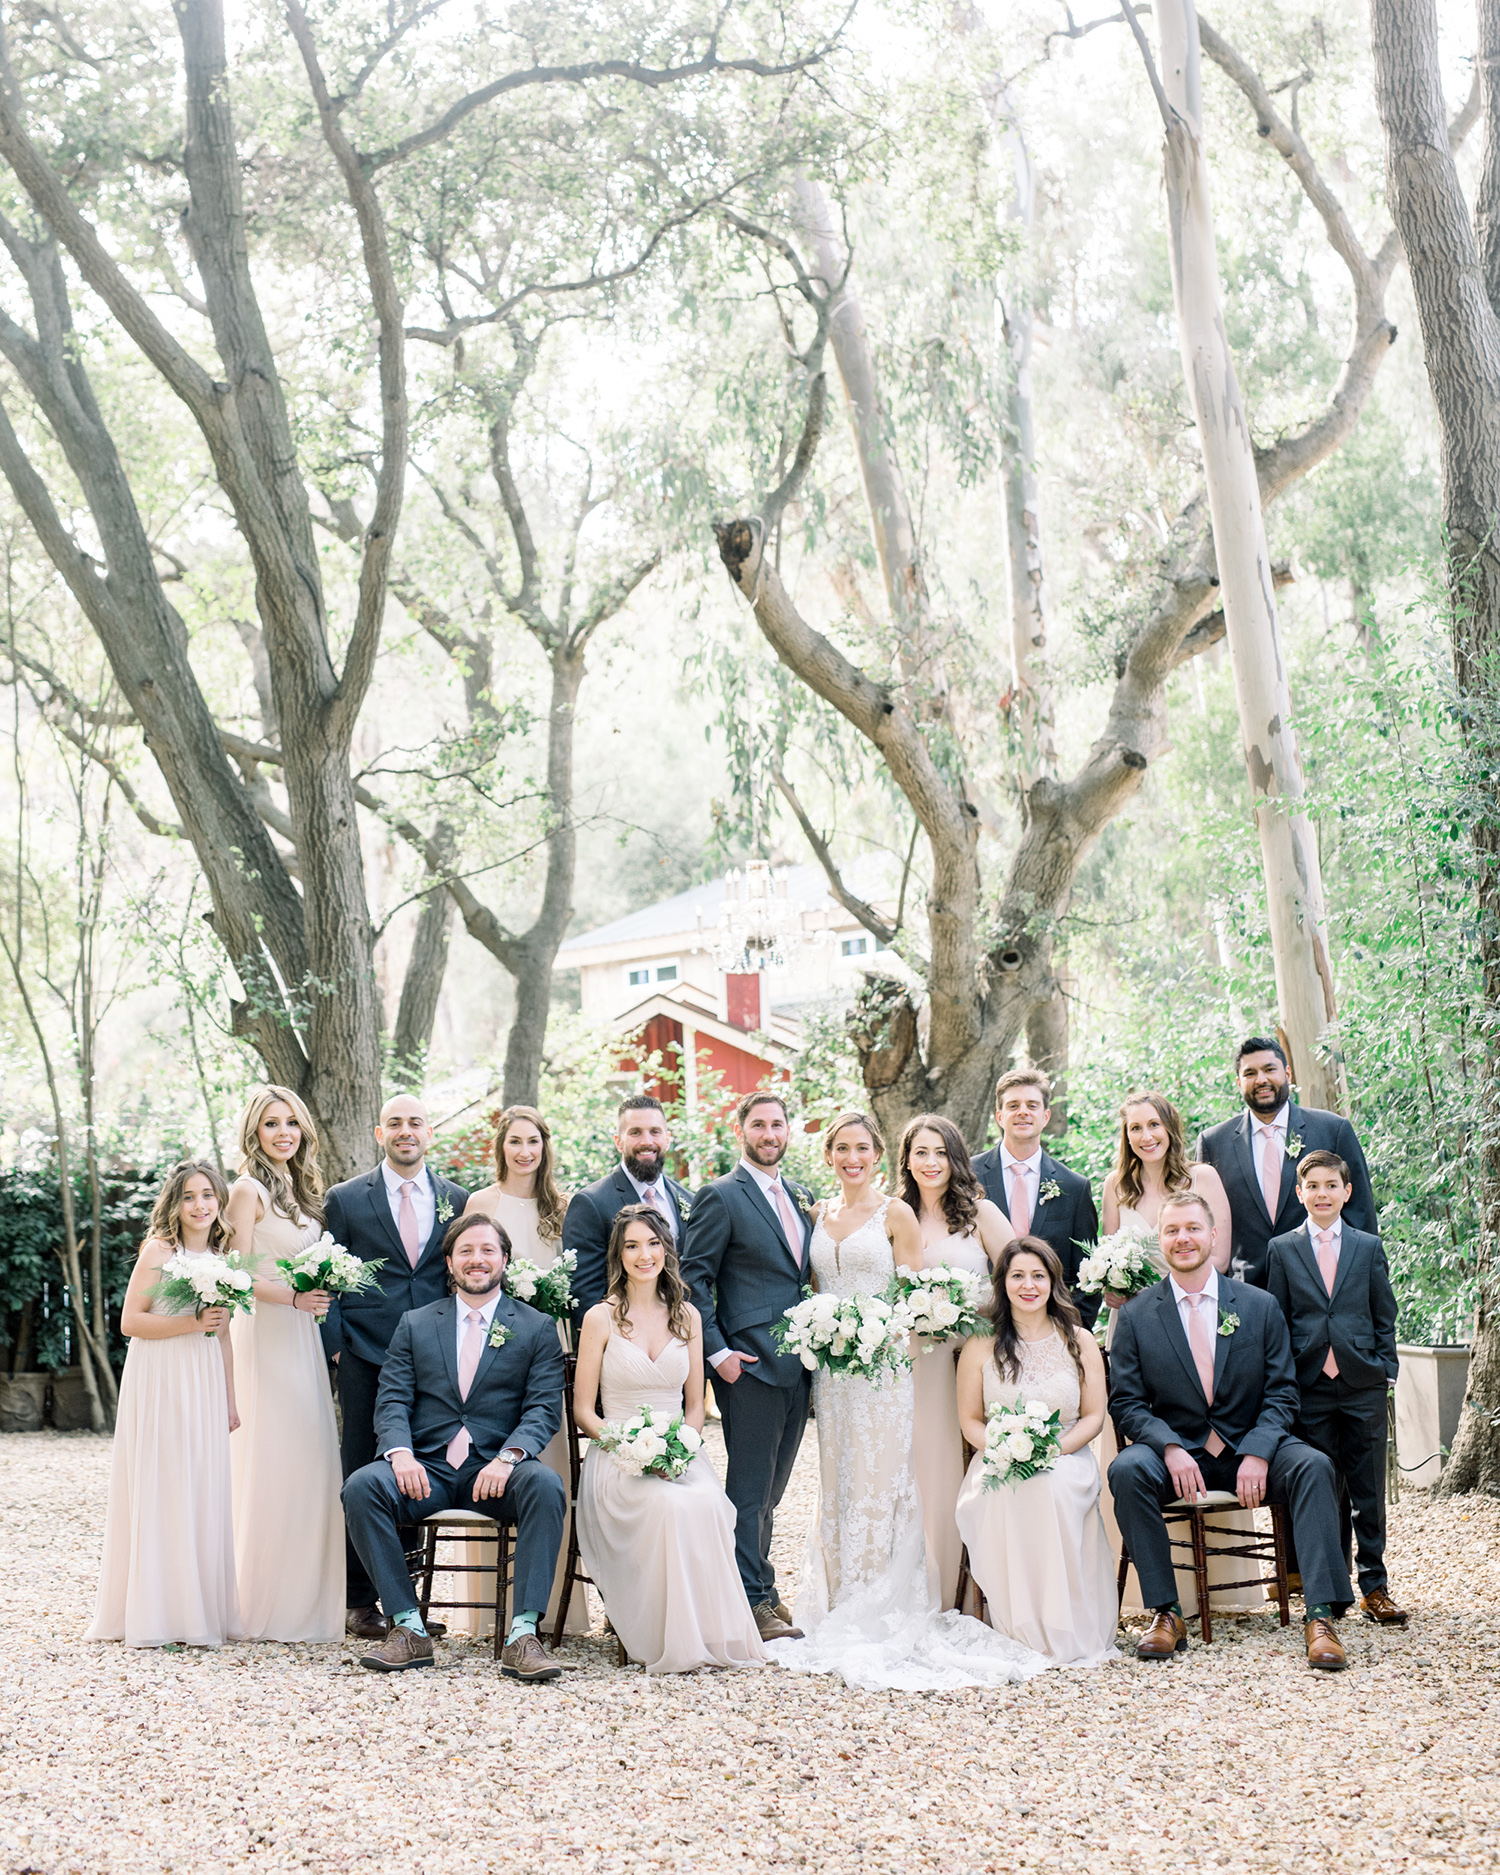 lauren aaron wedding party in front of trees